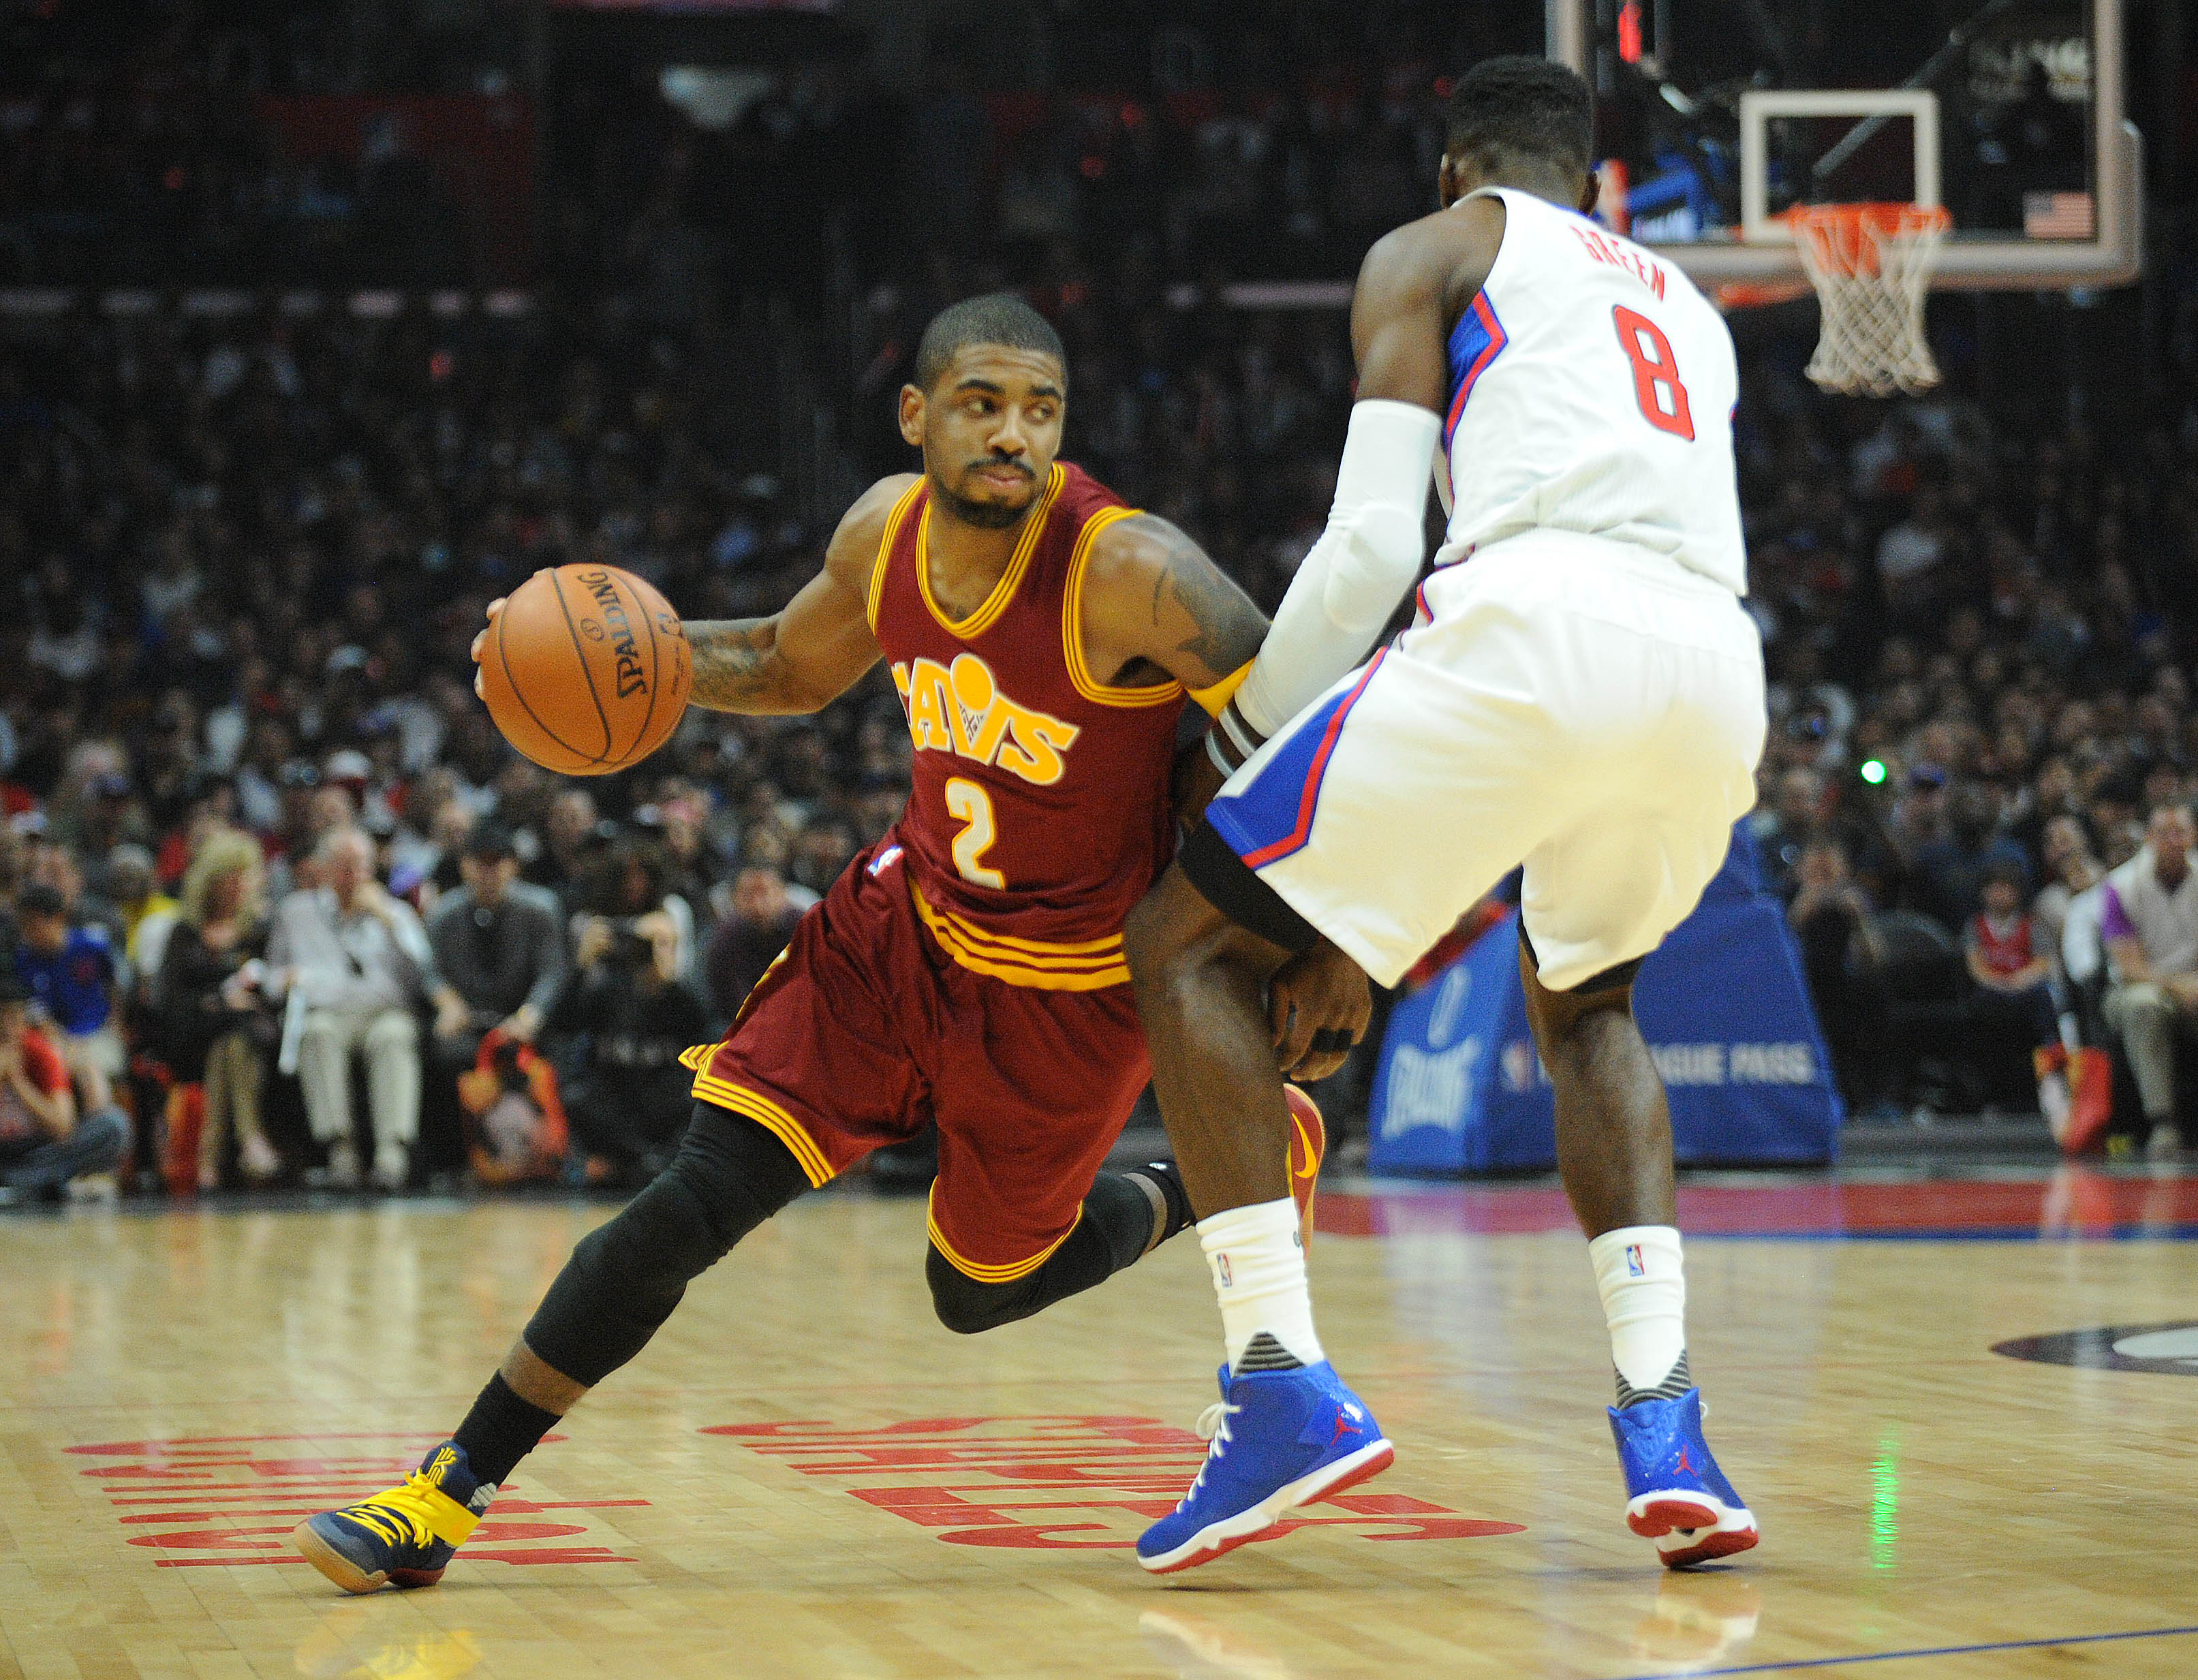 kyrie irving - photo #23